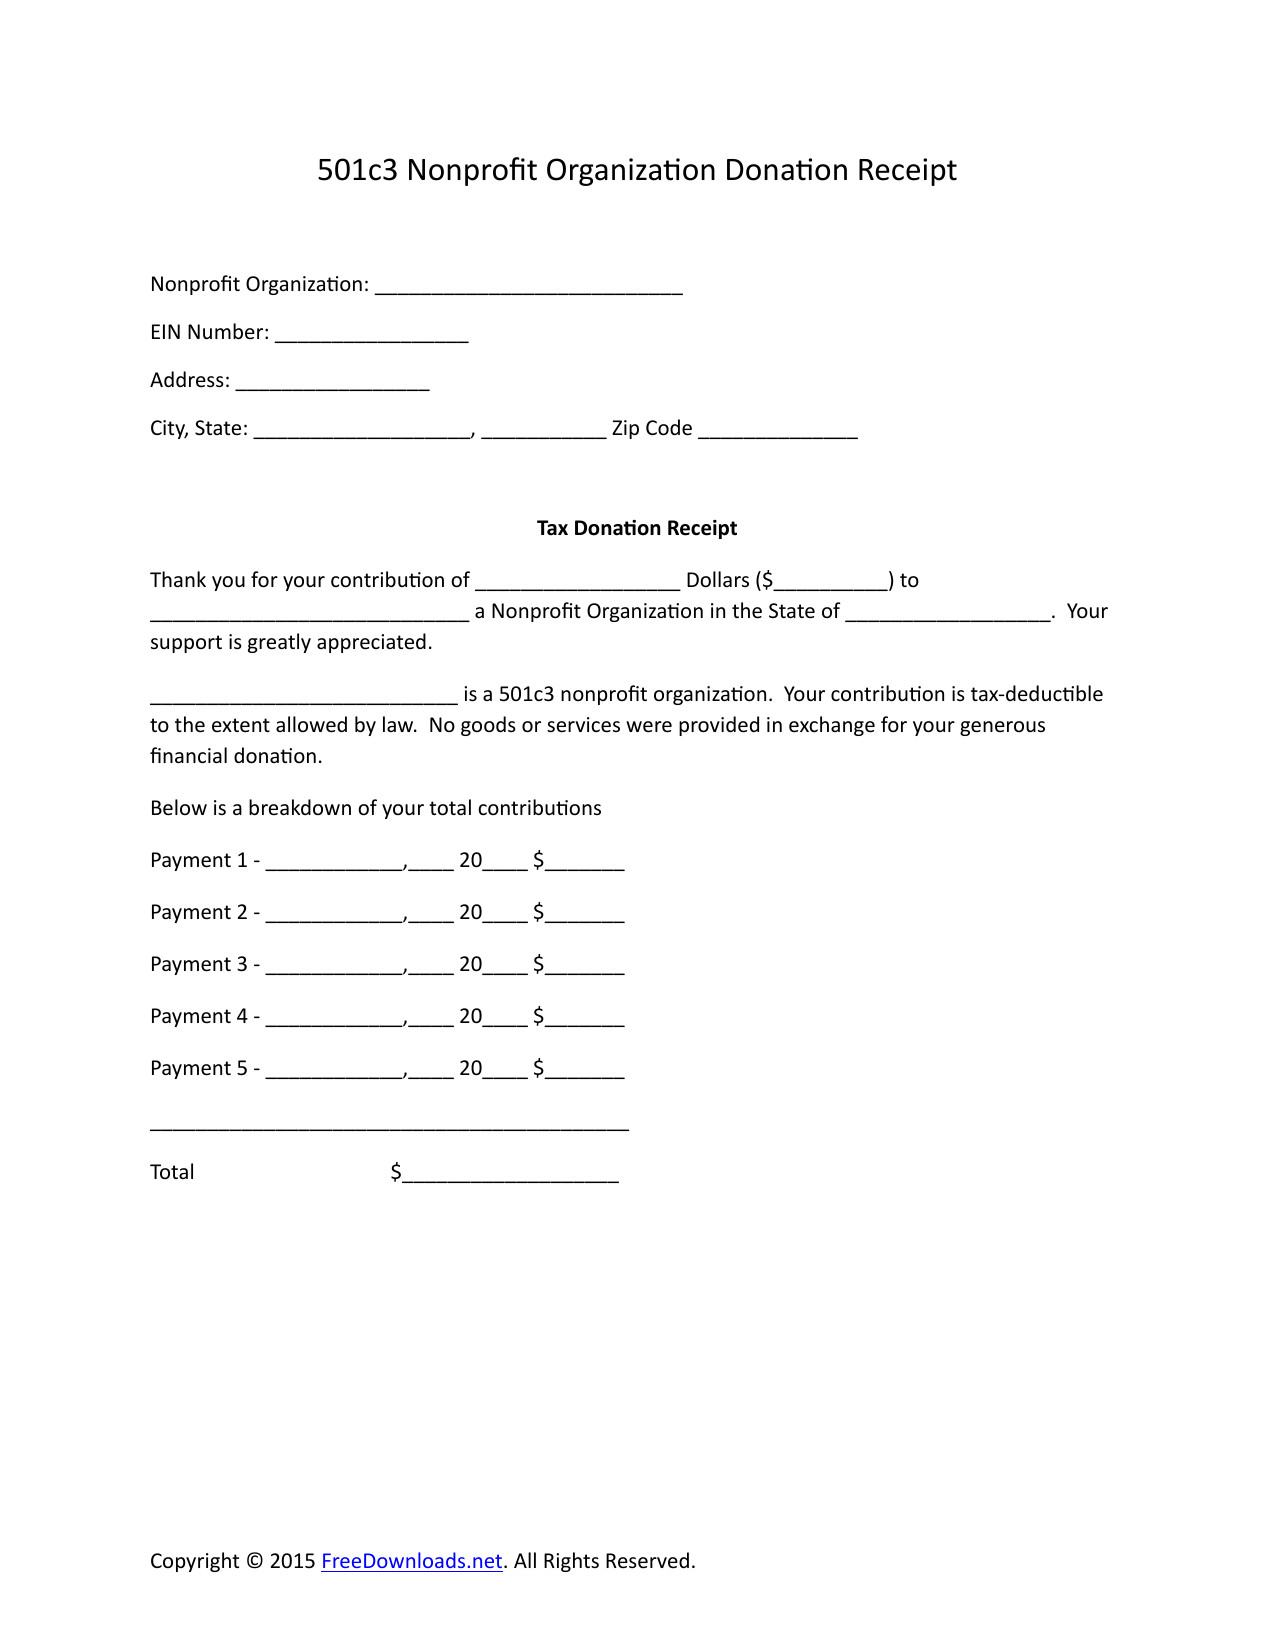 Download 501c3 Donation Receipt Letter for Tax Purposes